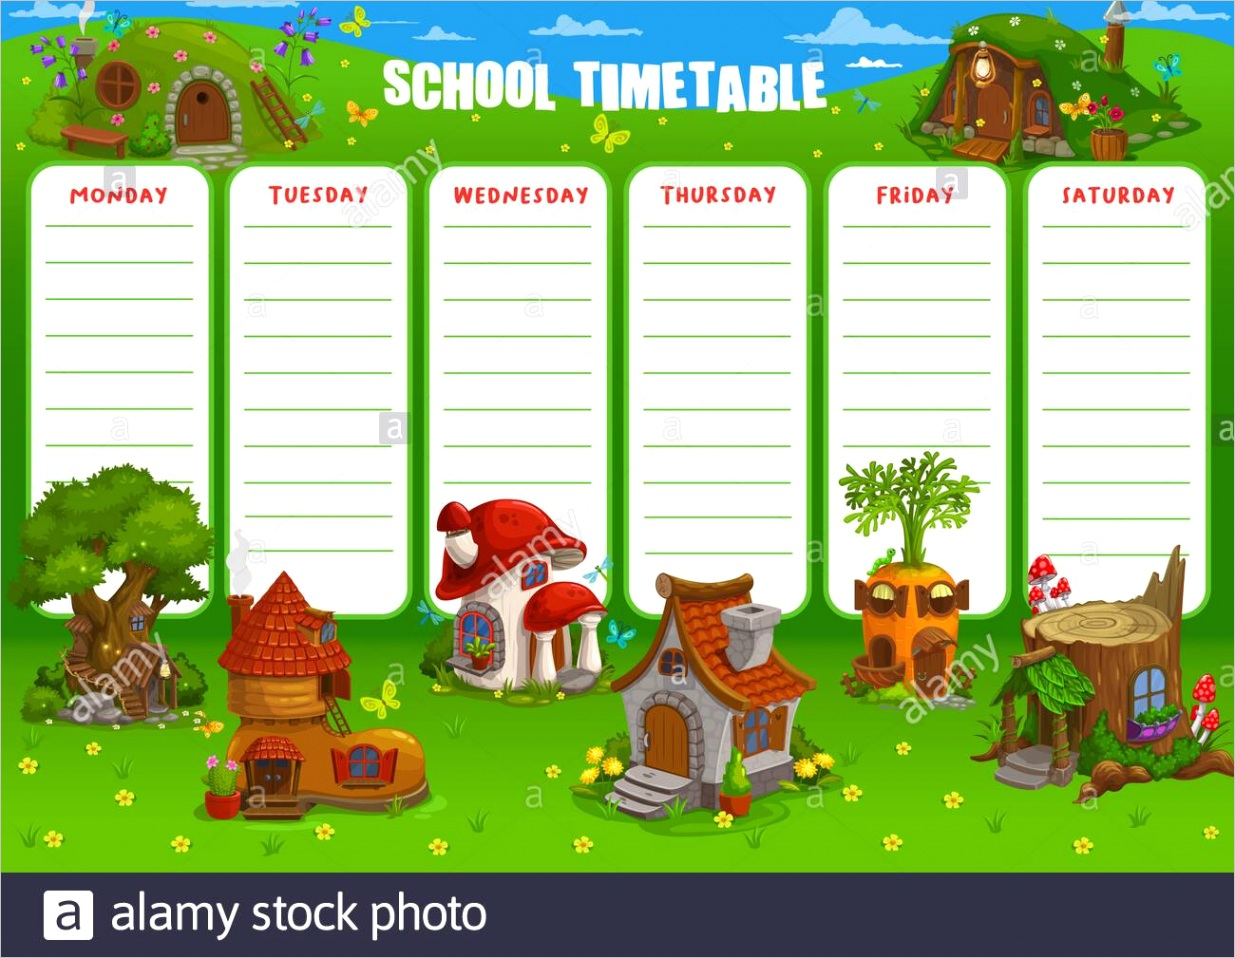 school timetable vector schedule template with cartoon dwarf gnome and fairy houses and fantasy buildings education weekly student lessons planner w image ml